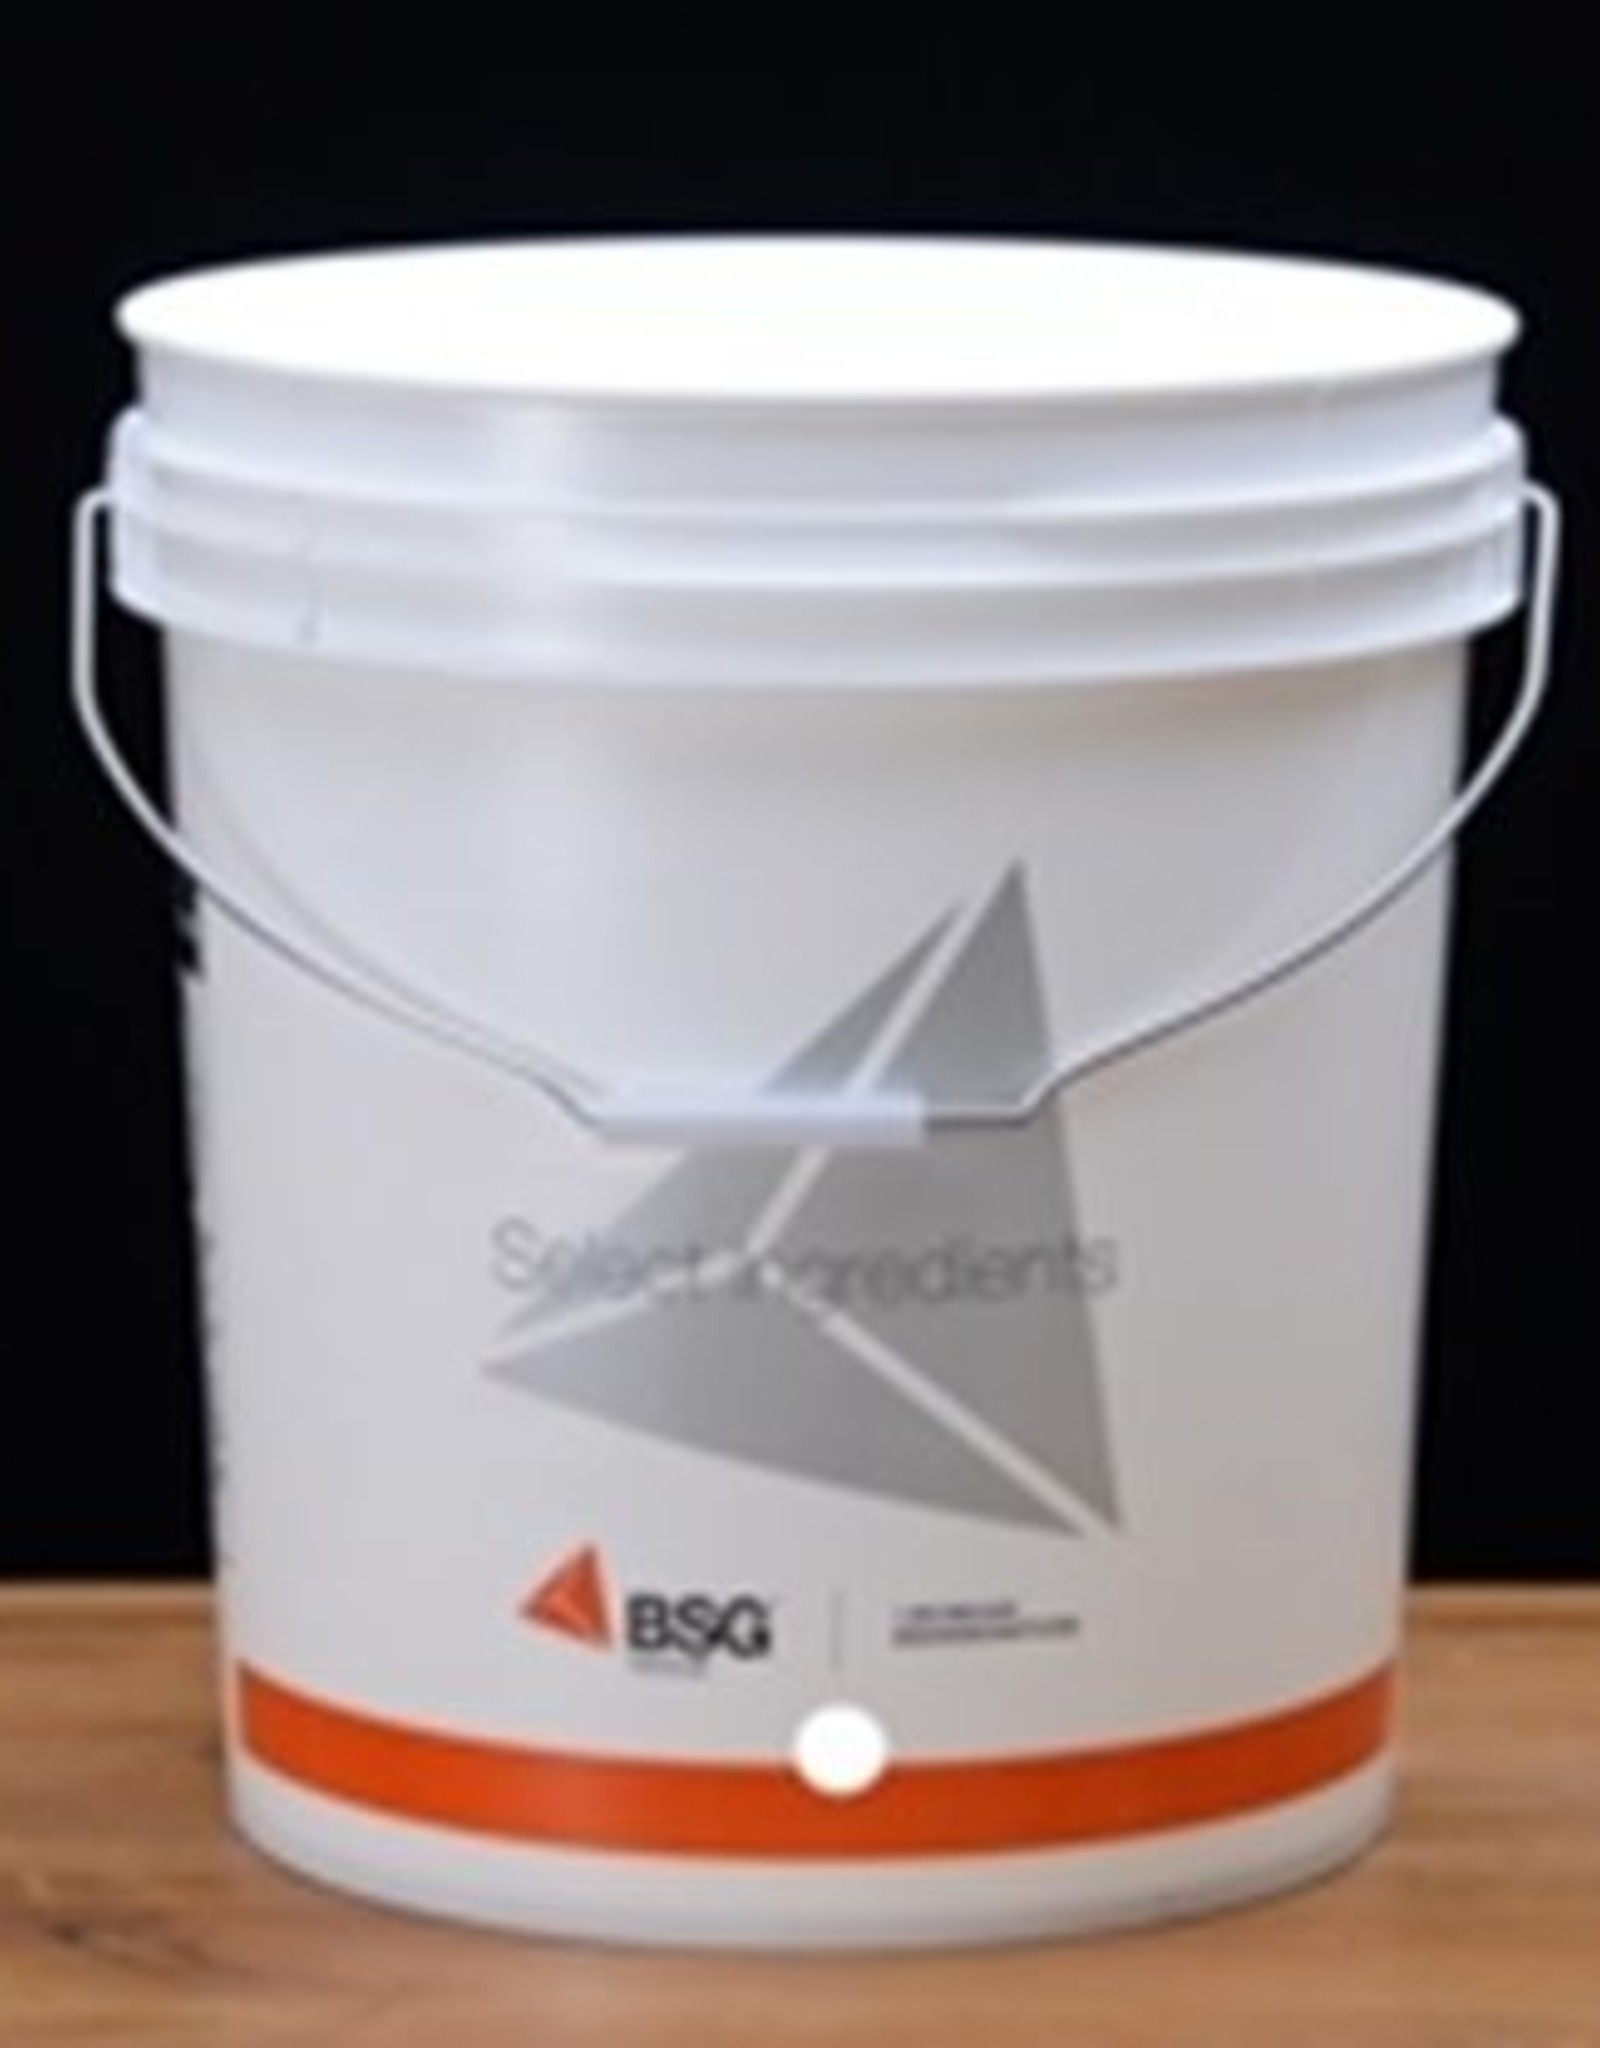 BUCKET- 7.8 GALLON WITH HOLE FOR SPIGOT